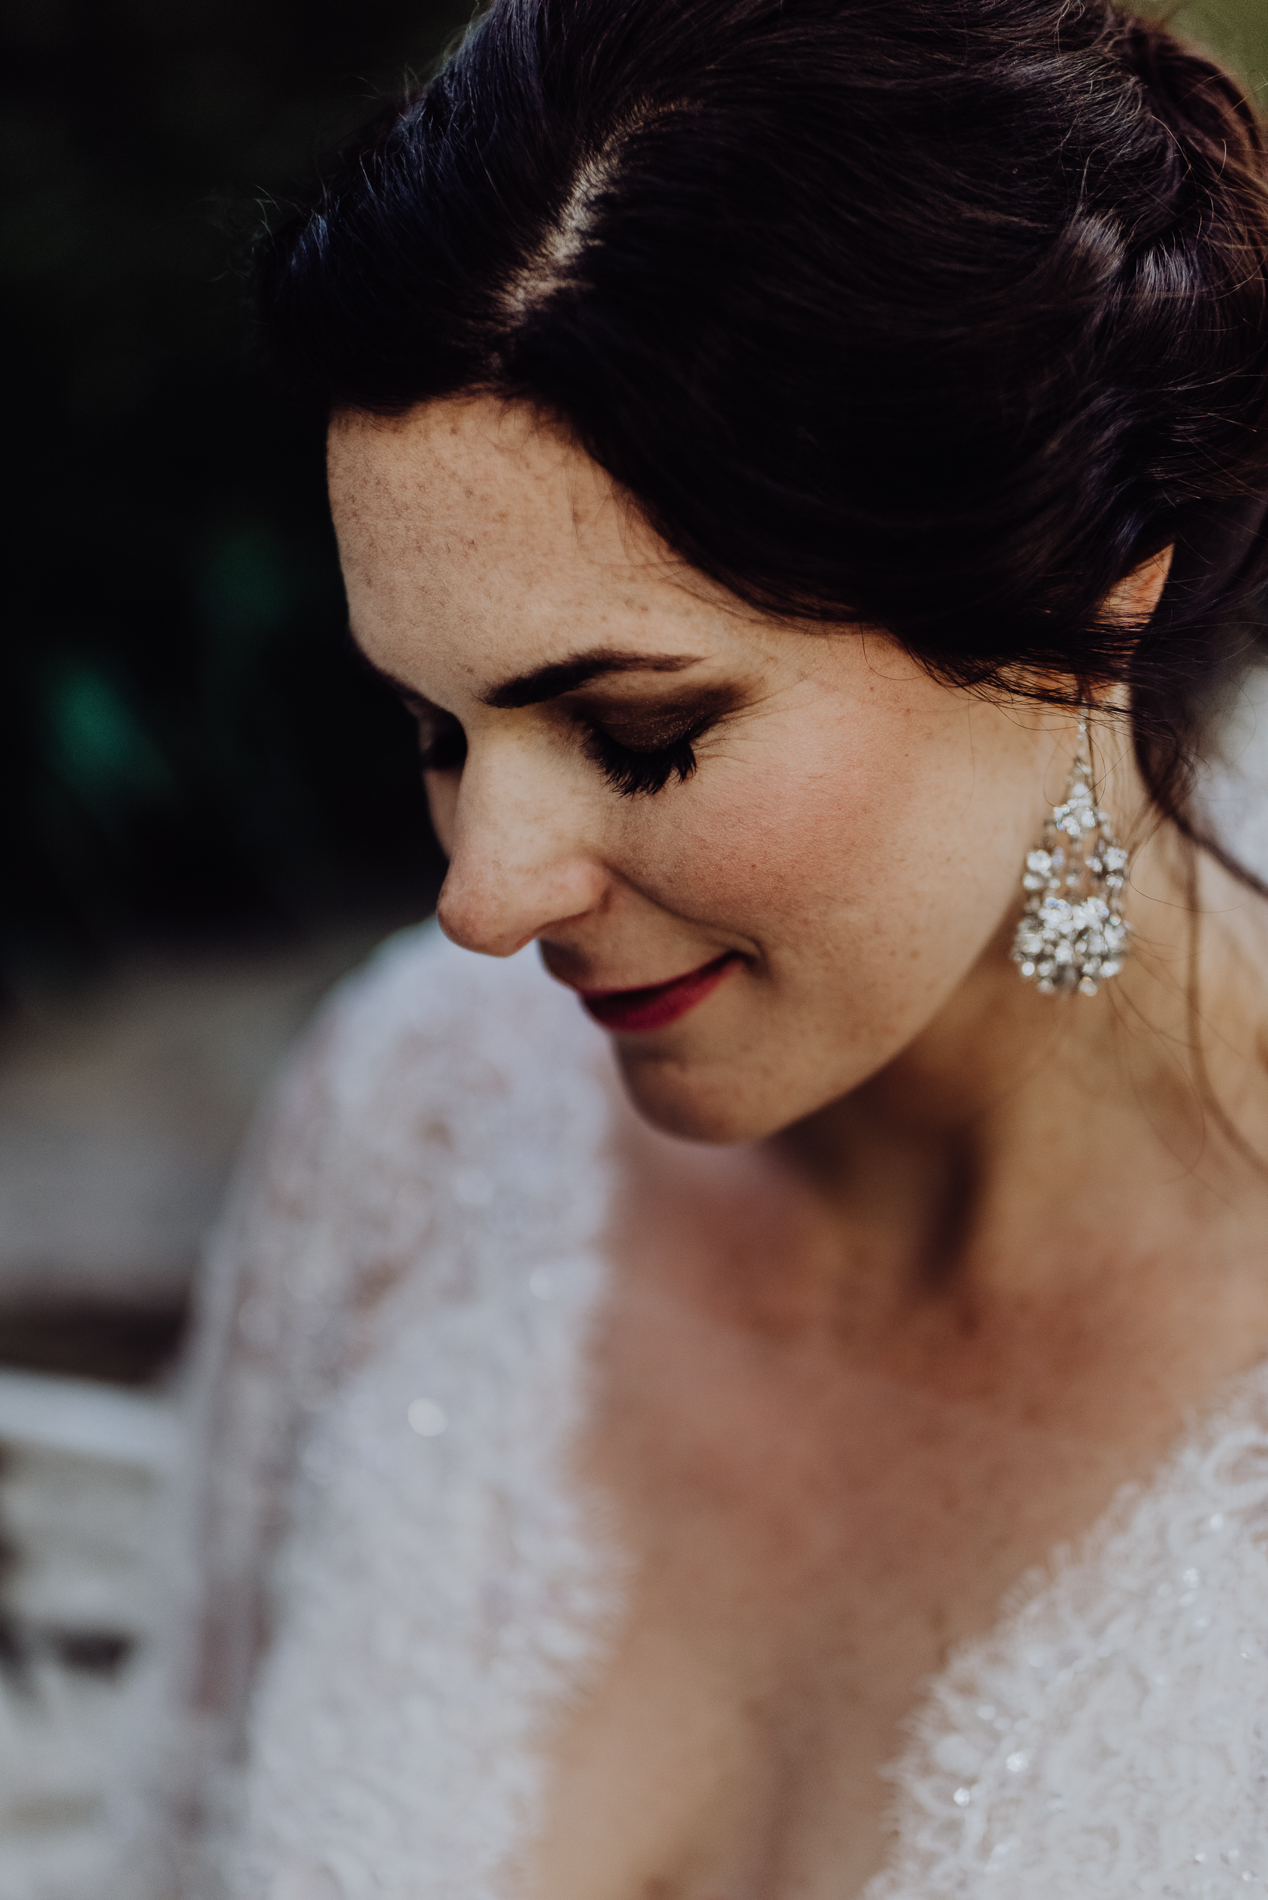 julia and dennis wedding at graceland by wilde company-139.jpg